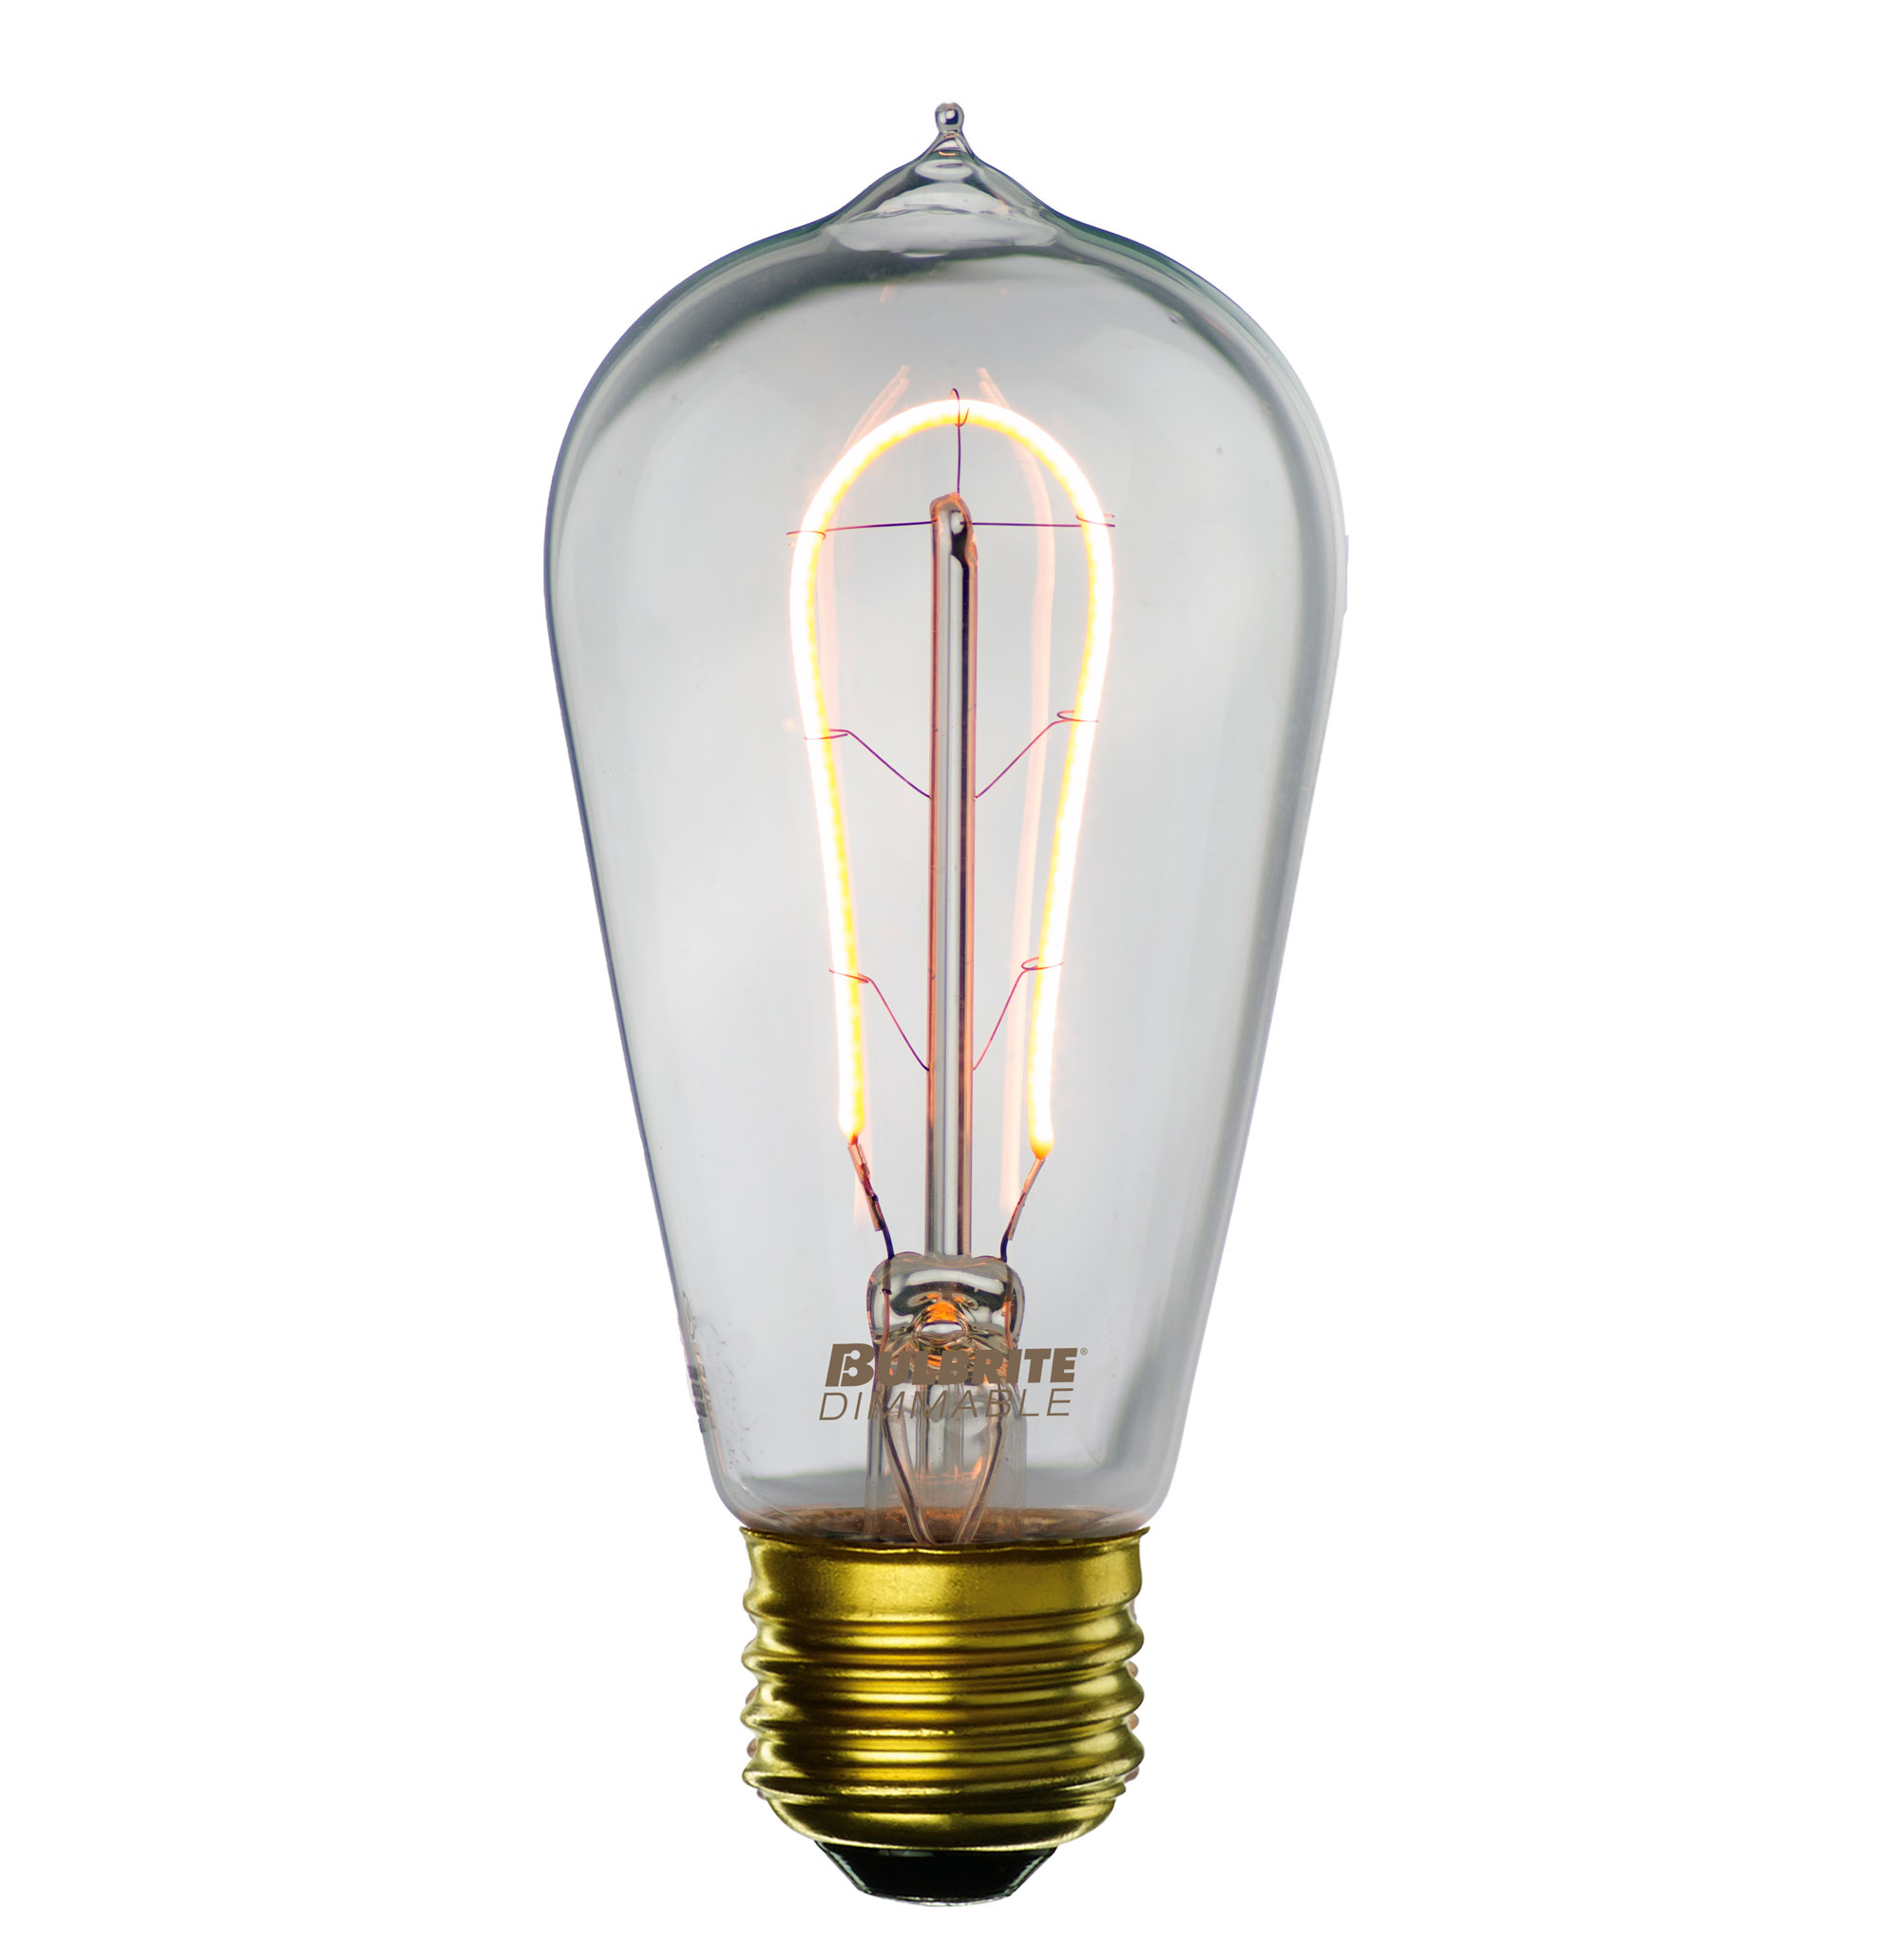 Lamp parts lighting parts chandelier parts 2w 25w st 18 style 2w 25w st 18 style hairpin curved filament led bulb mozeypictures Gallery